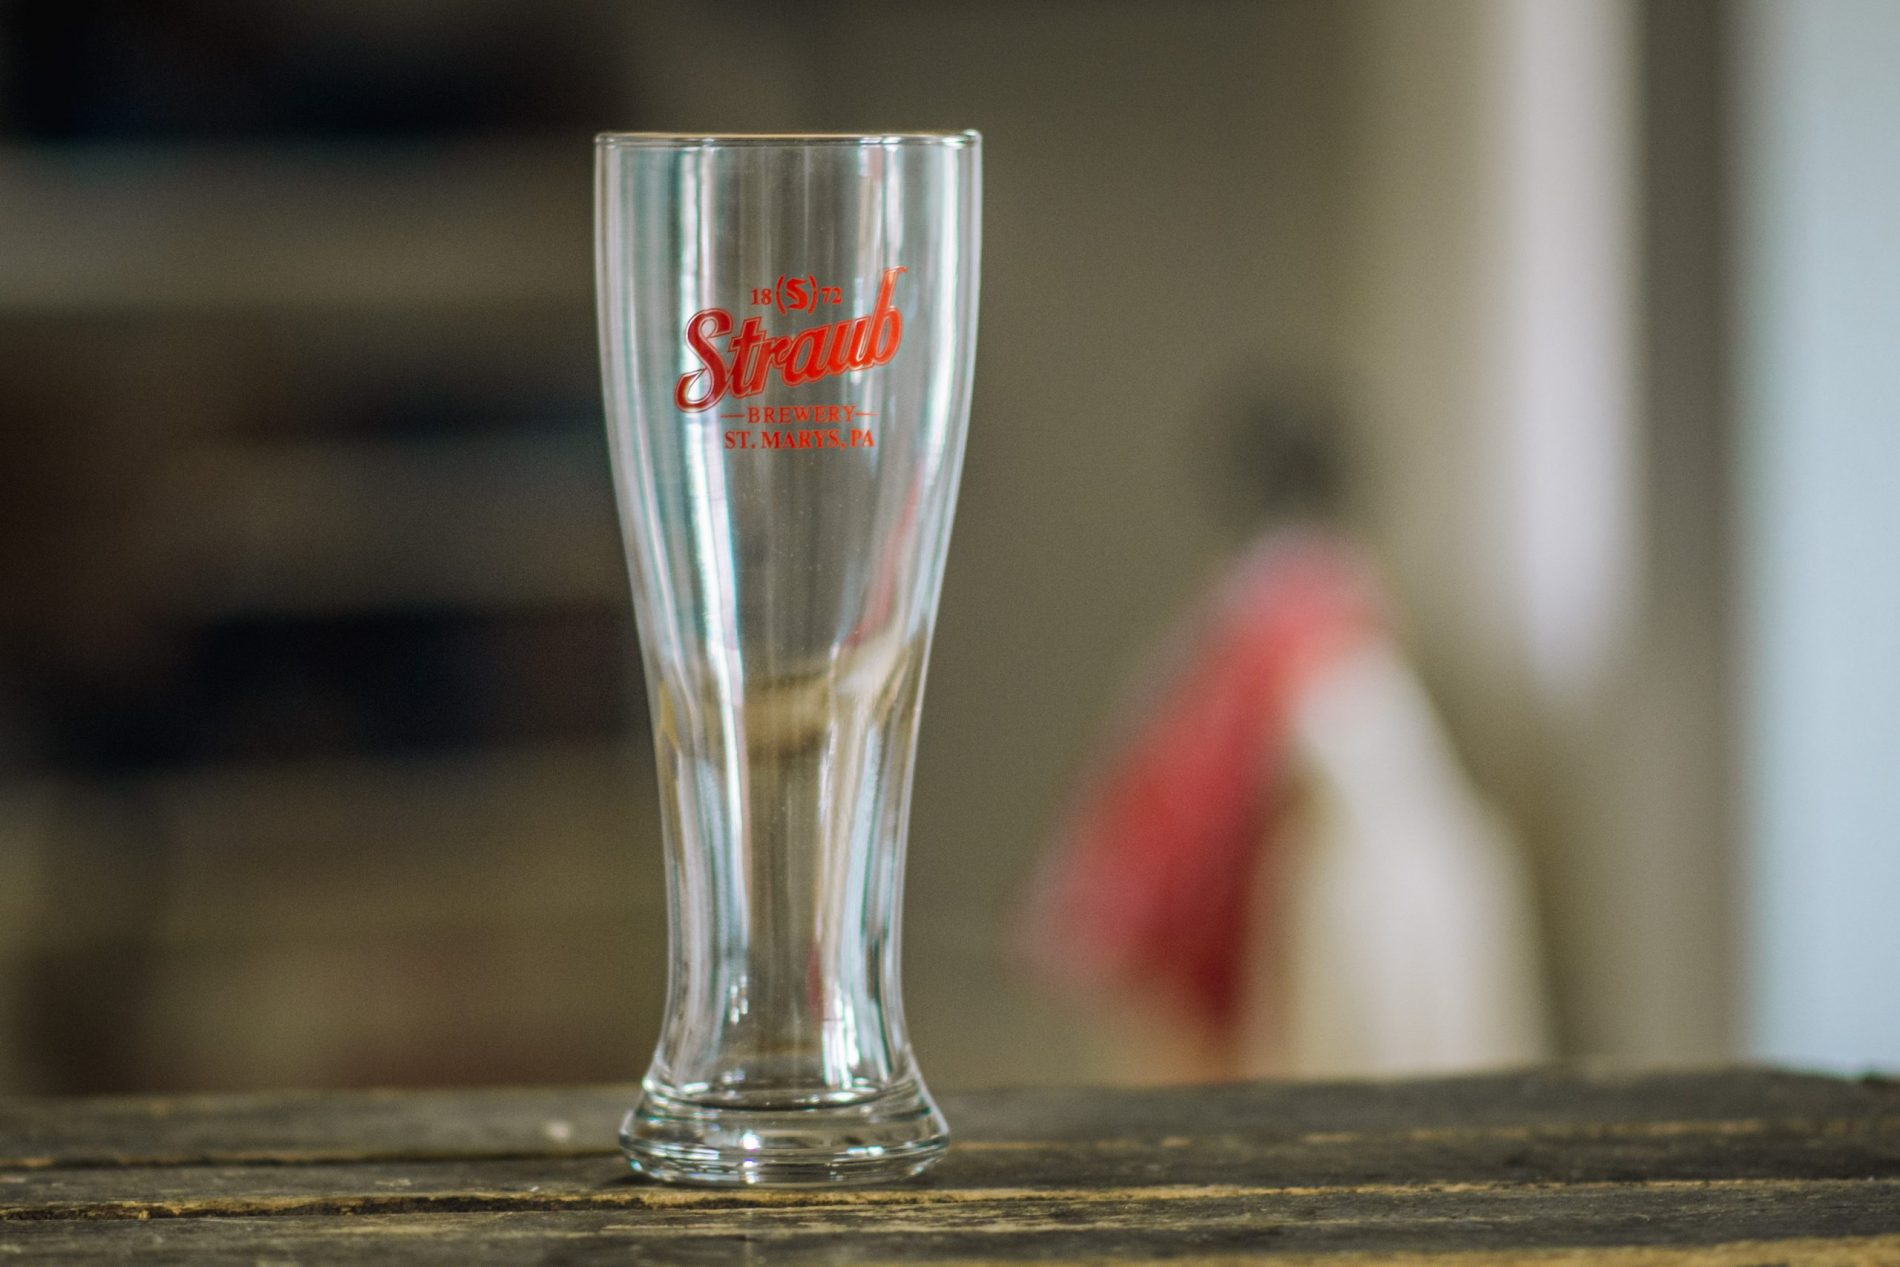 pilsner glass with Straub Brewery logo